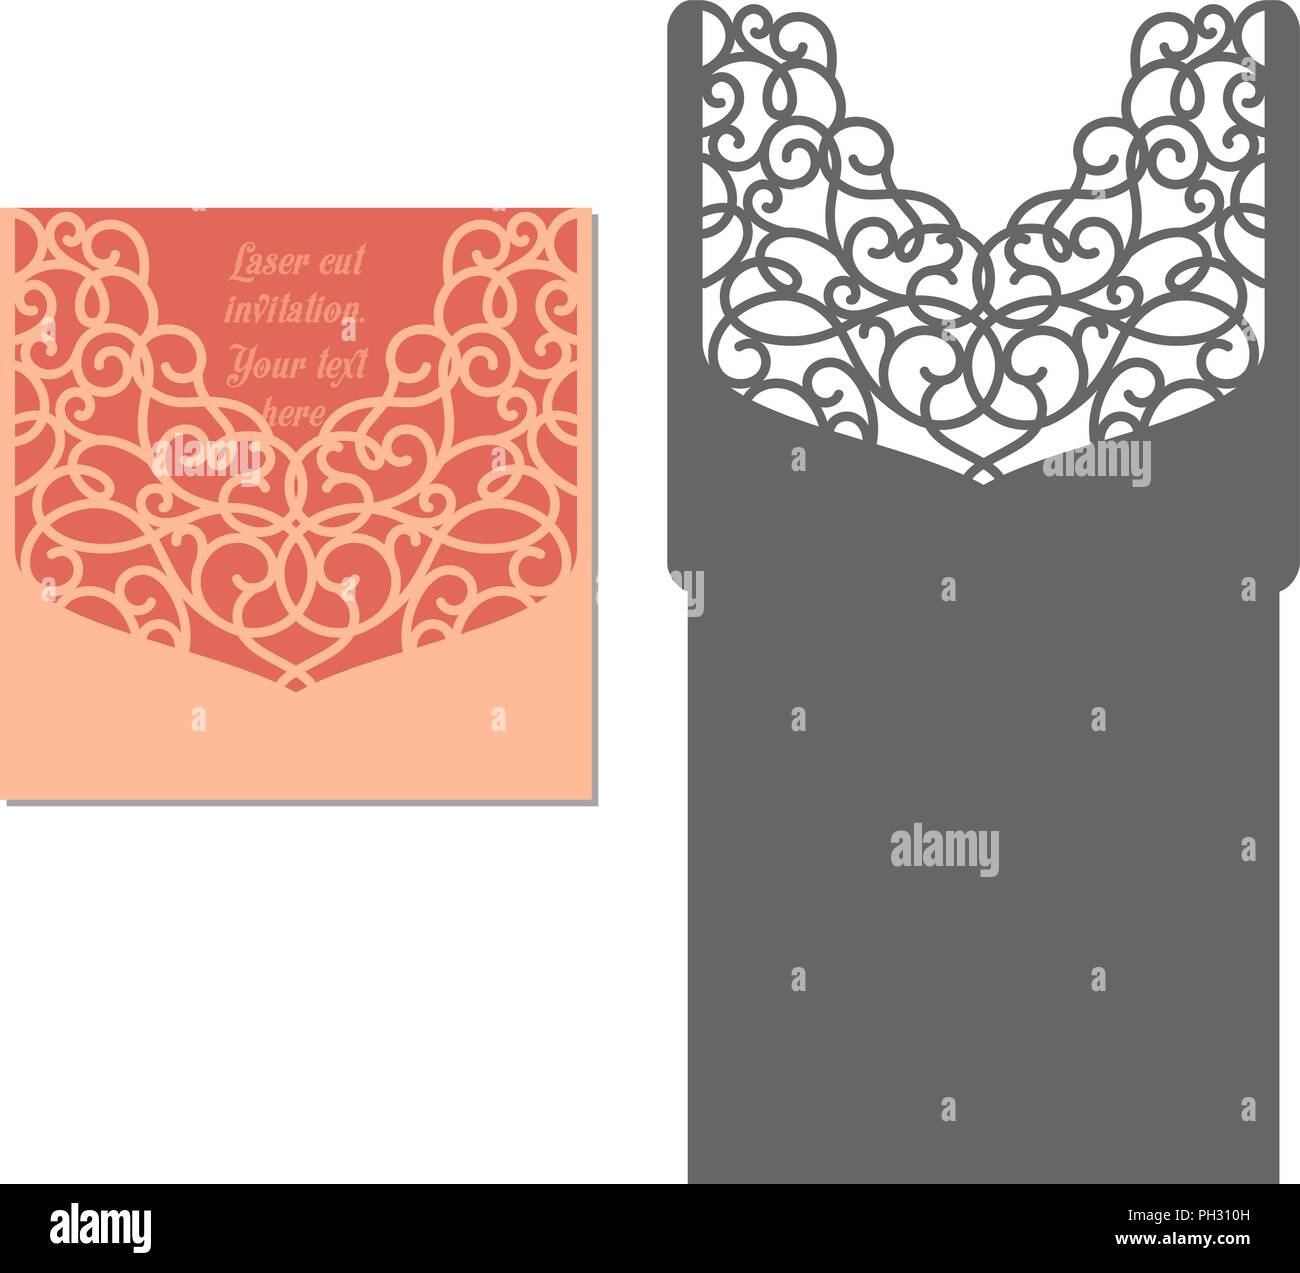 laser cut envelope template for invitation wedding card paper